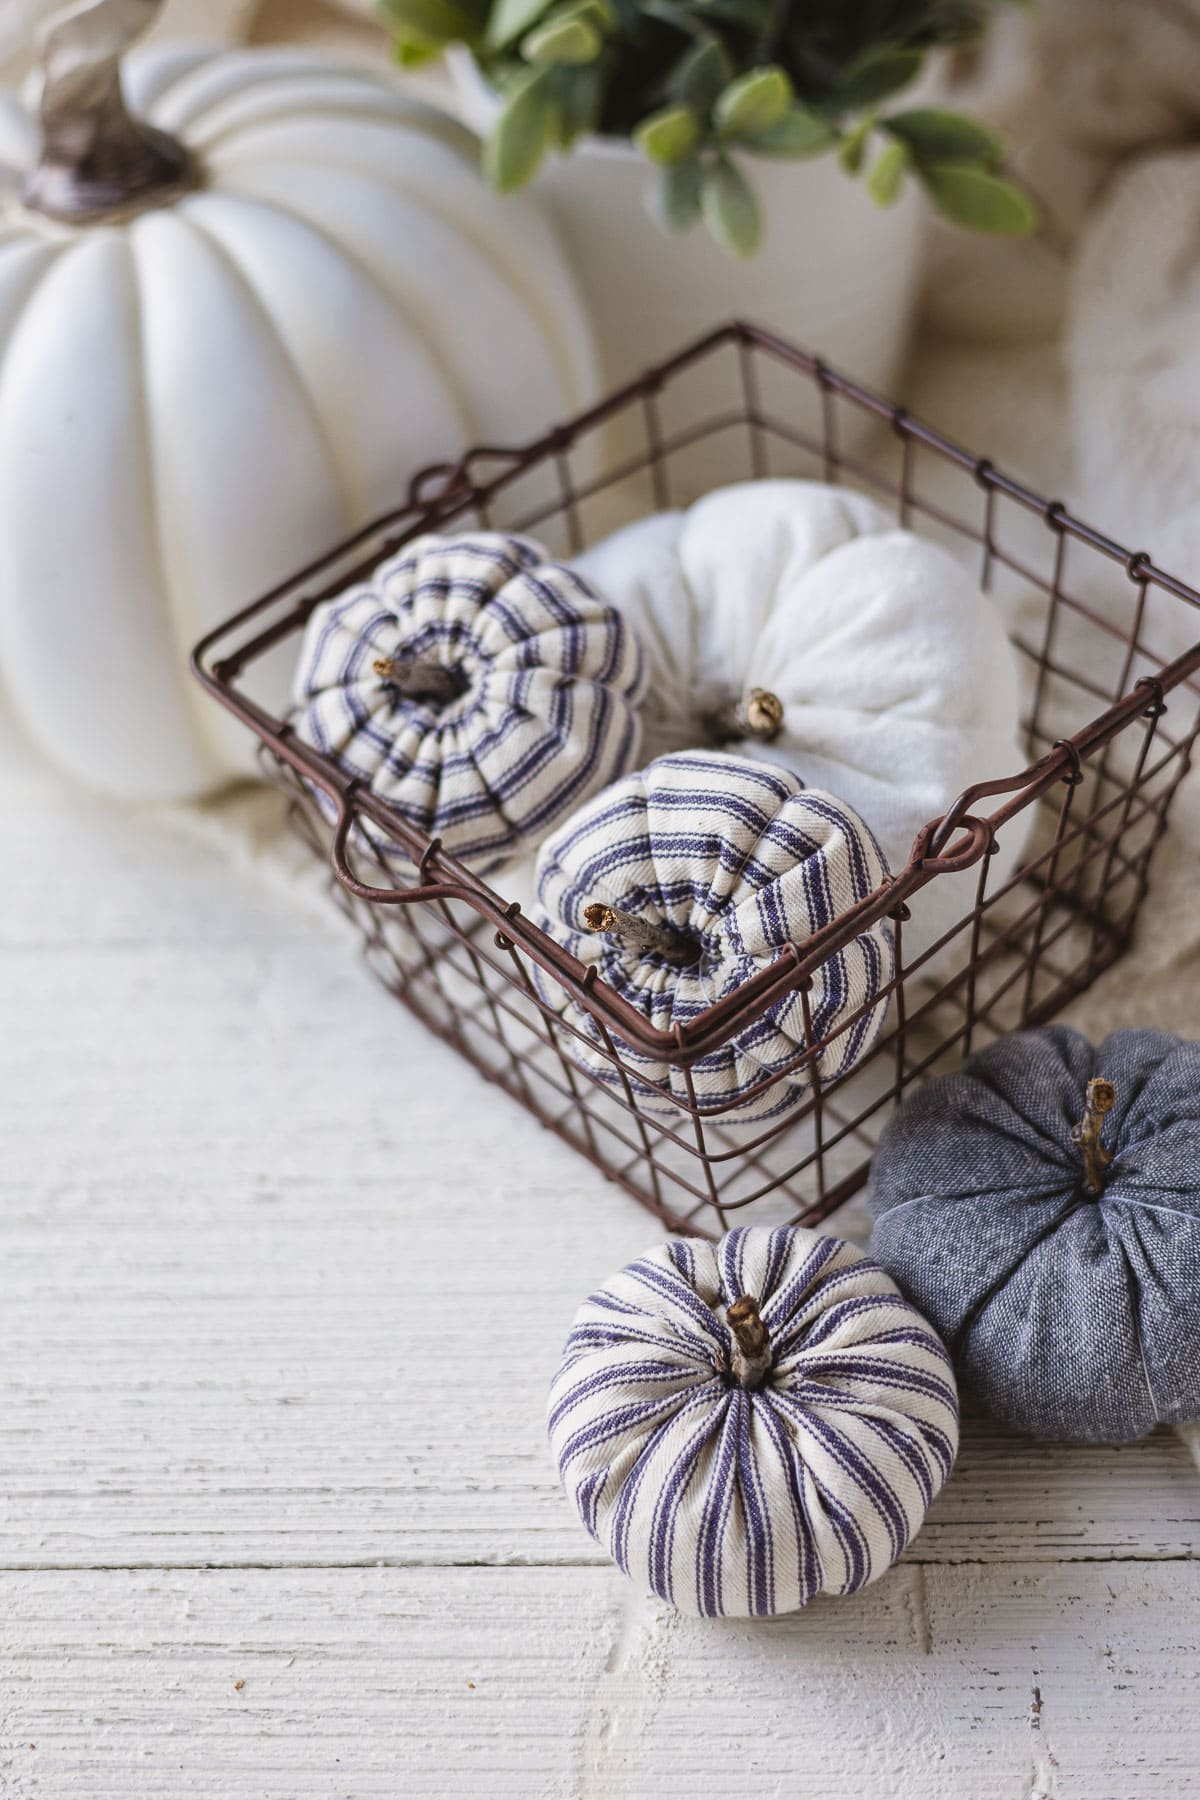 Ticking stripe and blue linen handmade pumpkins in a wire basket on a wooden surface.